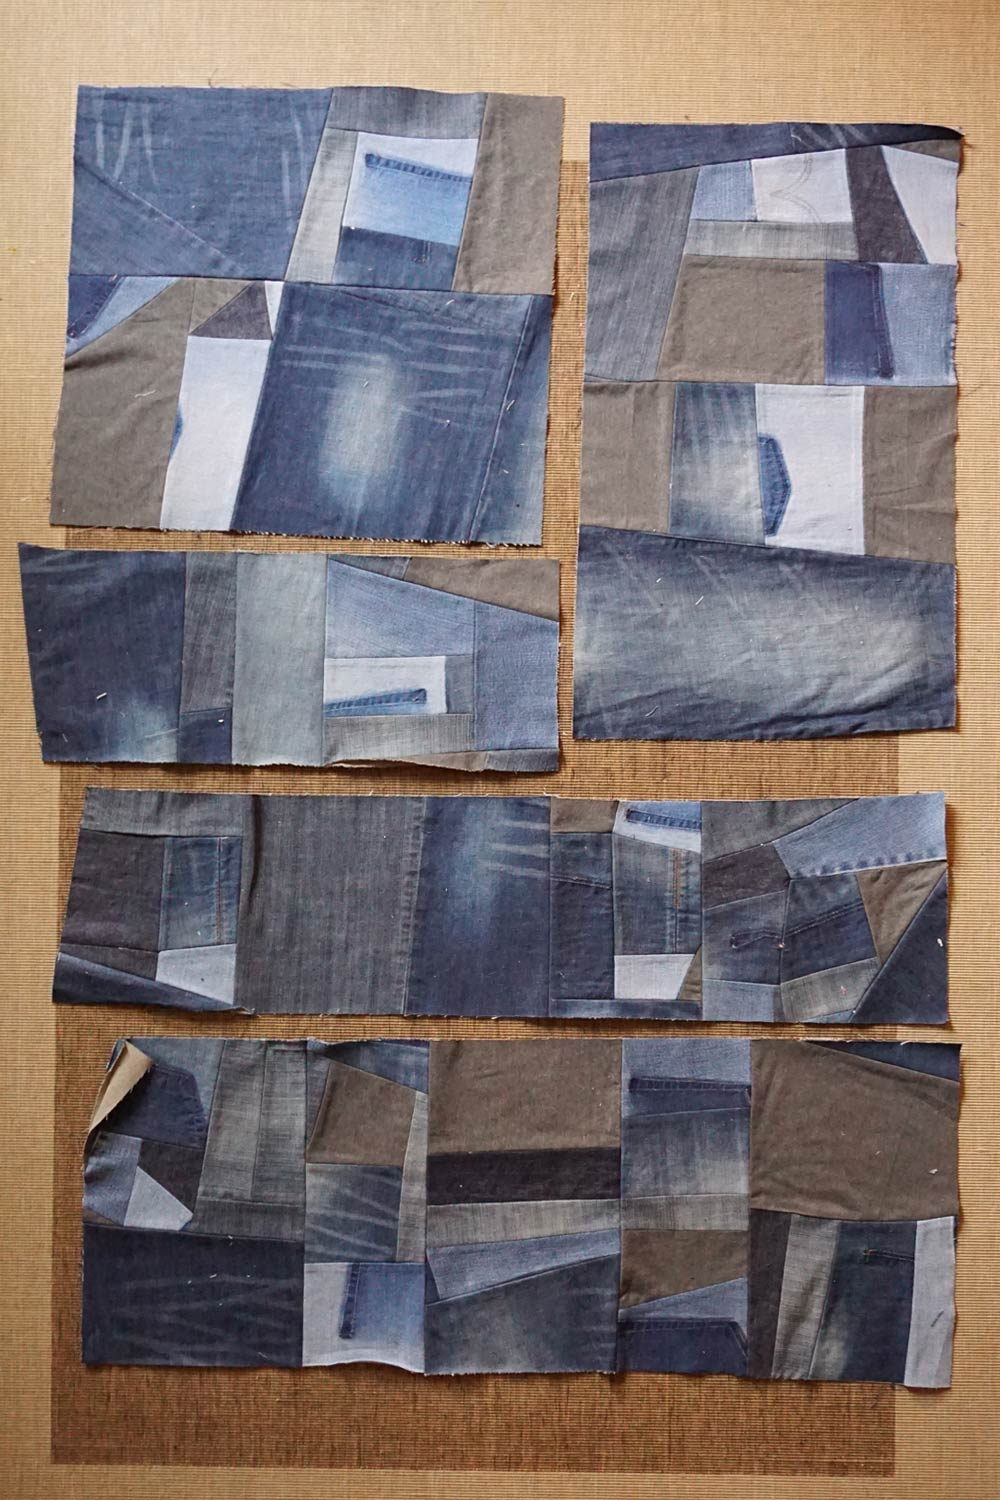 DIY Improvisational Denim Quilt | Sew DIY